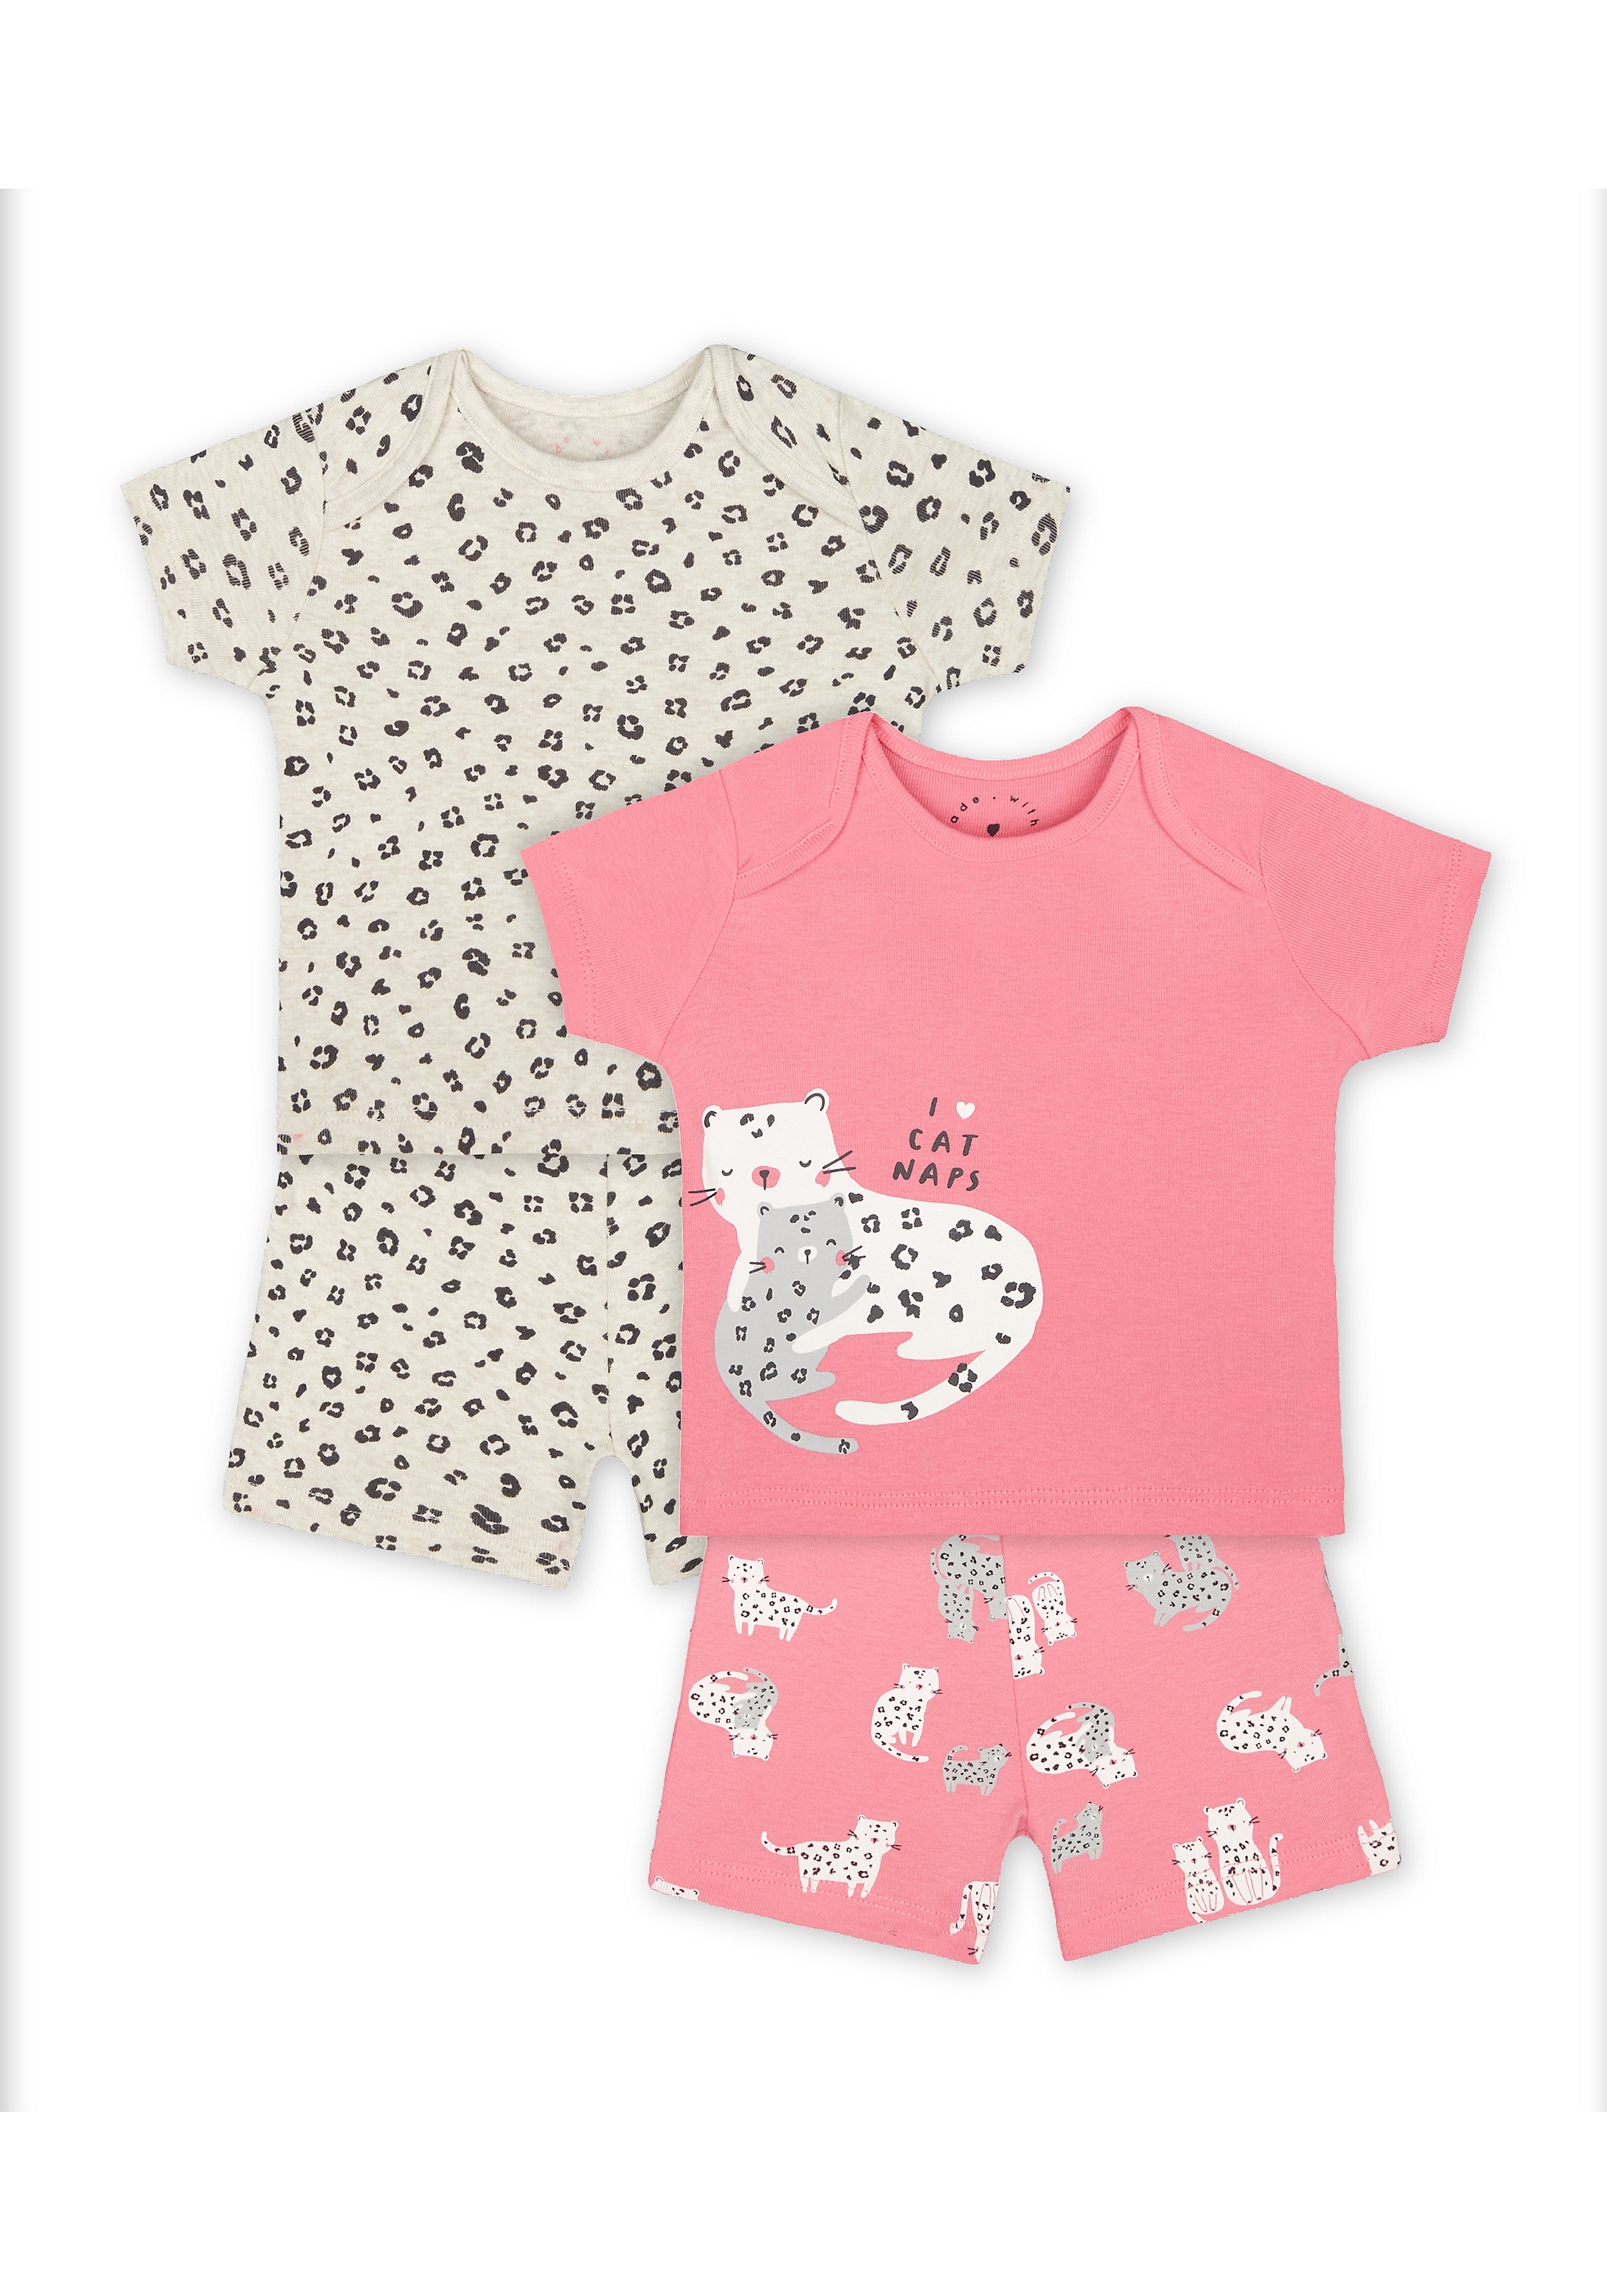 Mothercare   Girls Half Sleeves Shorts Sets - Pack Of 2 - Pink